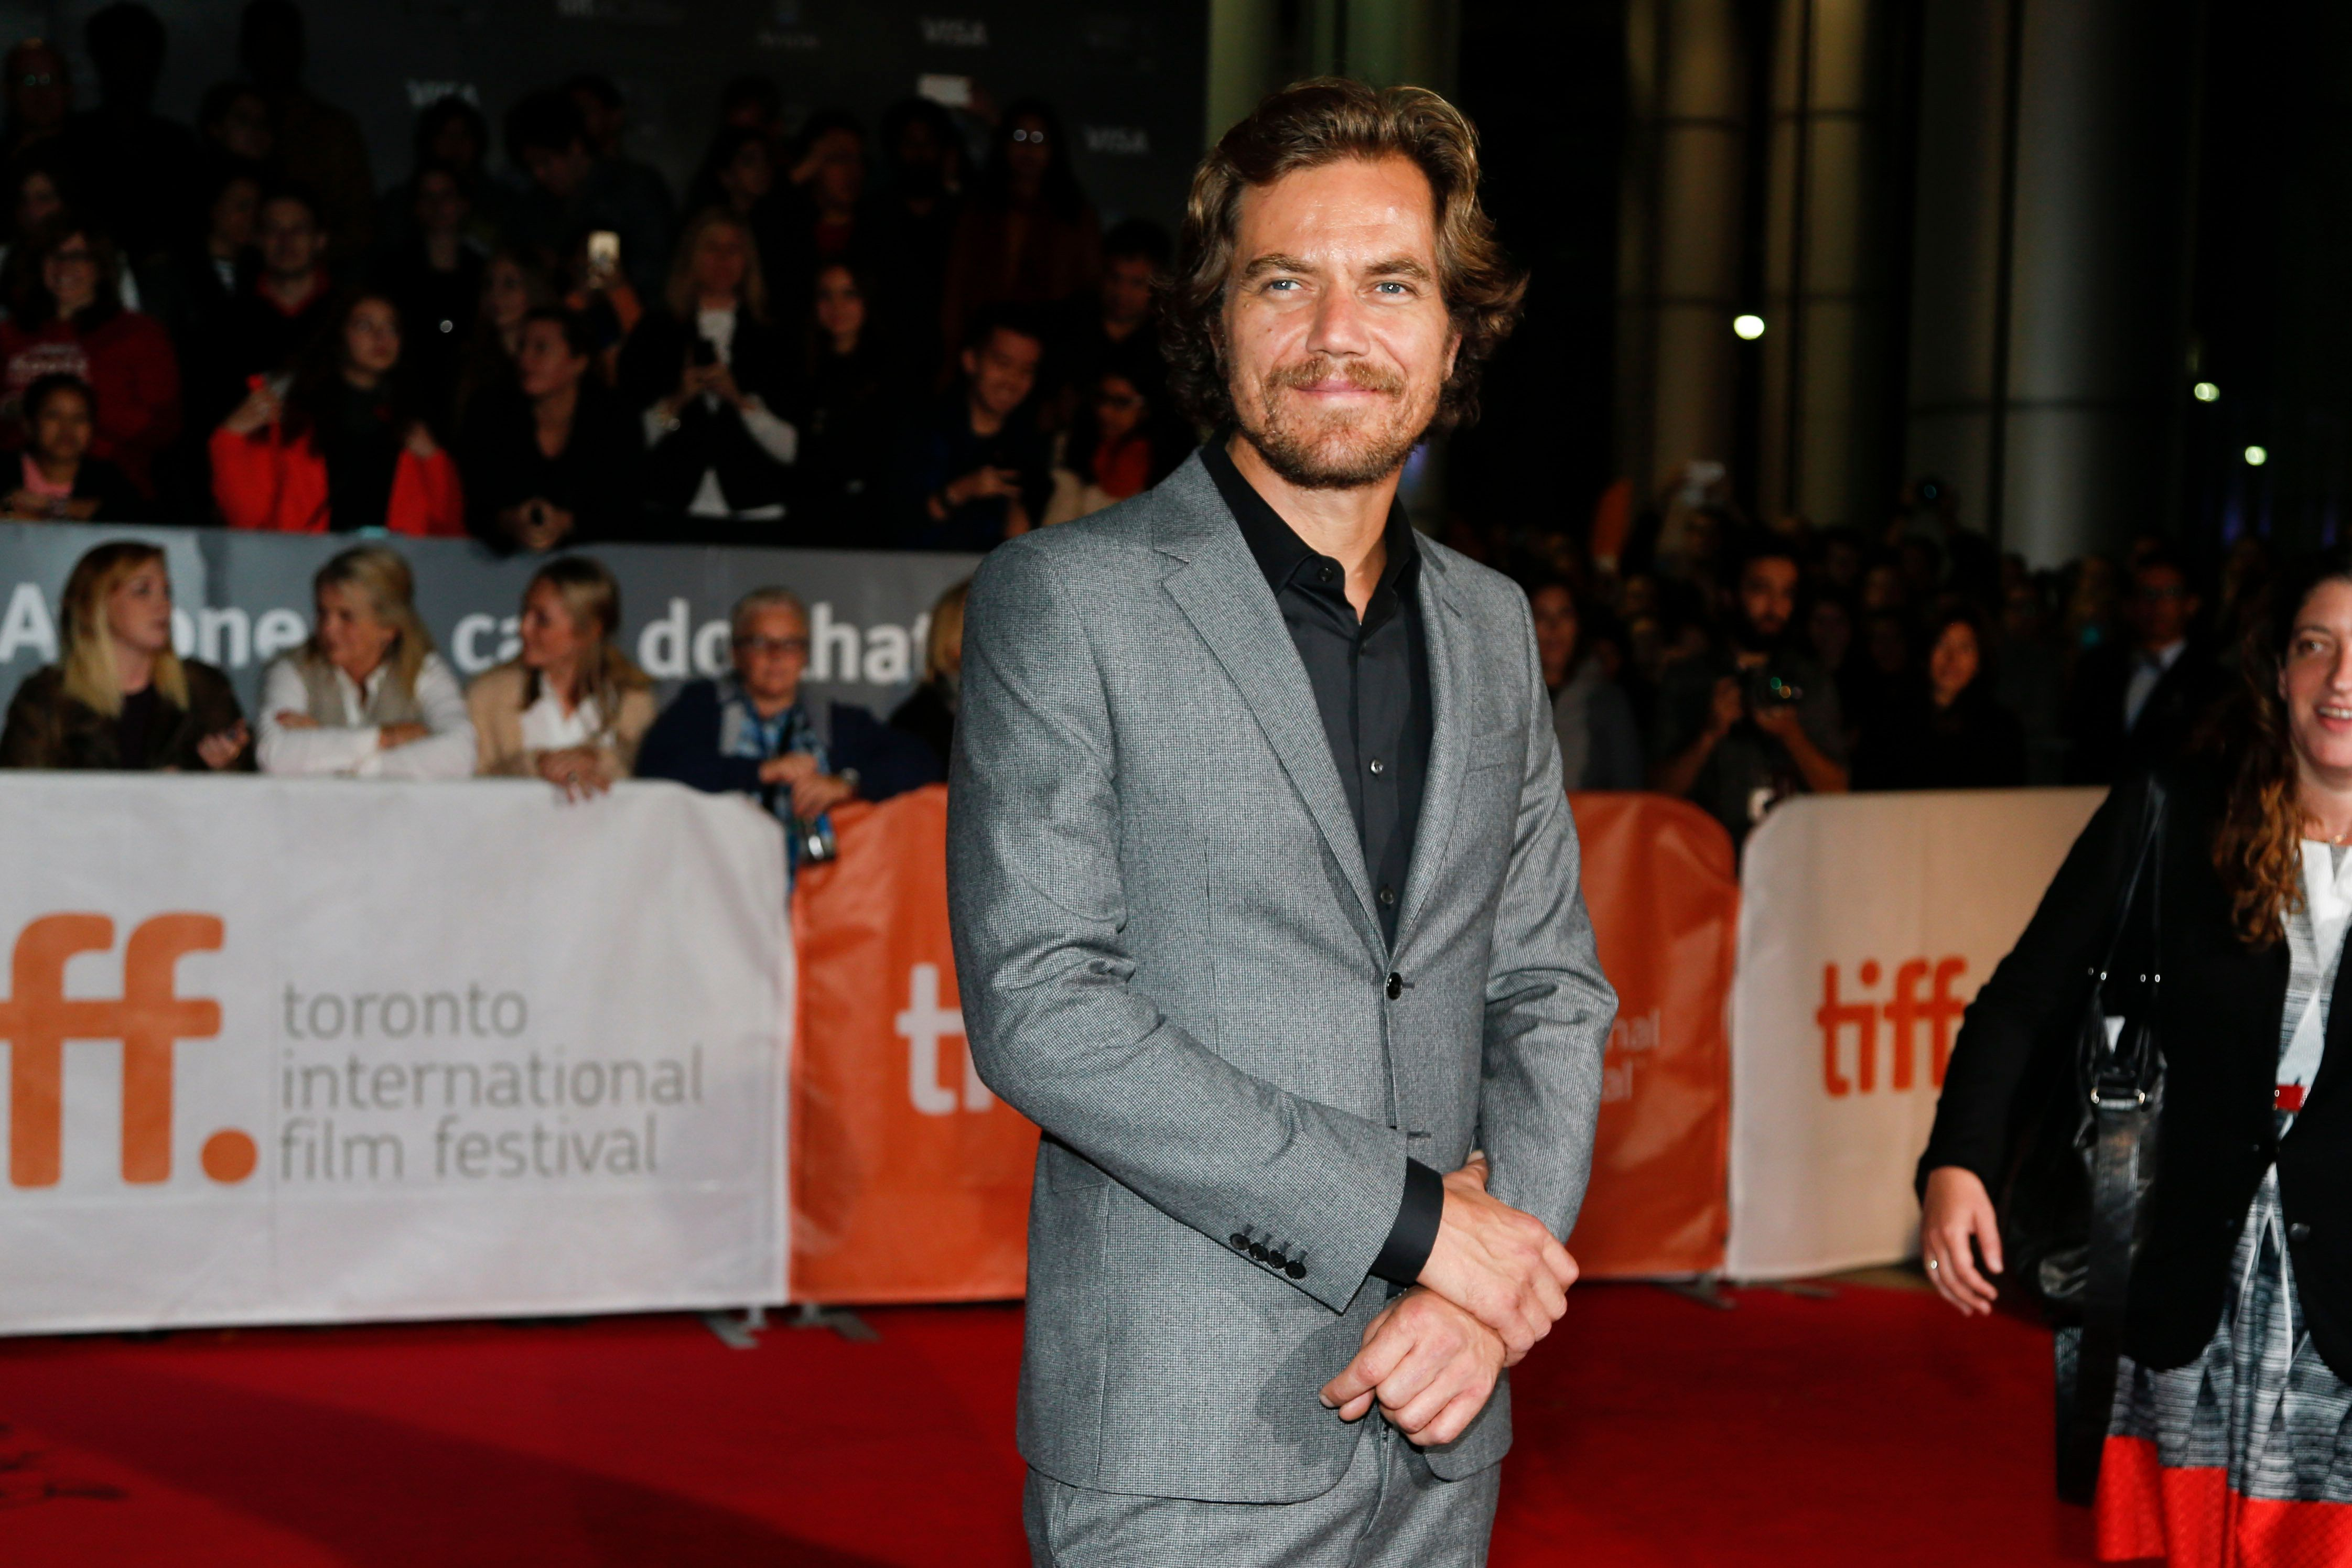 TORONTO, ON - SEPTEMBER 13 - Michael Shannon walks the red carpet at Roy Thomson Hall for the screening of Freeheld, September 13, 2015.        (Bernard Weil/Toronto Star via Getty Images)